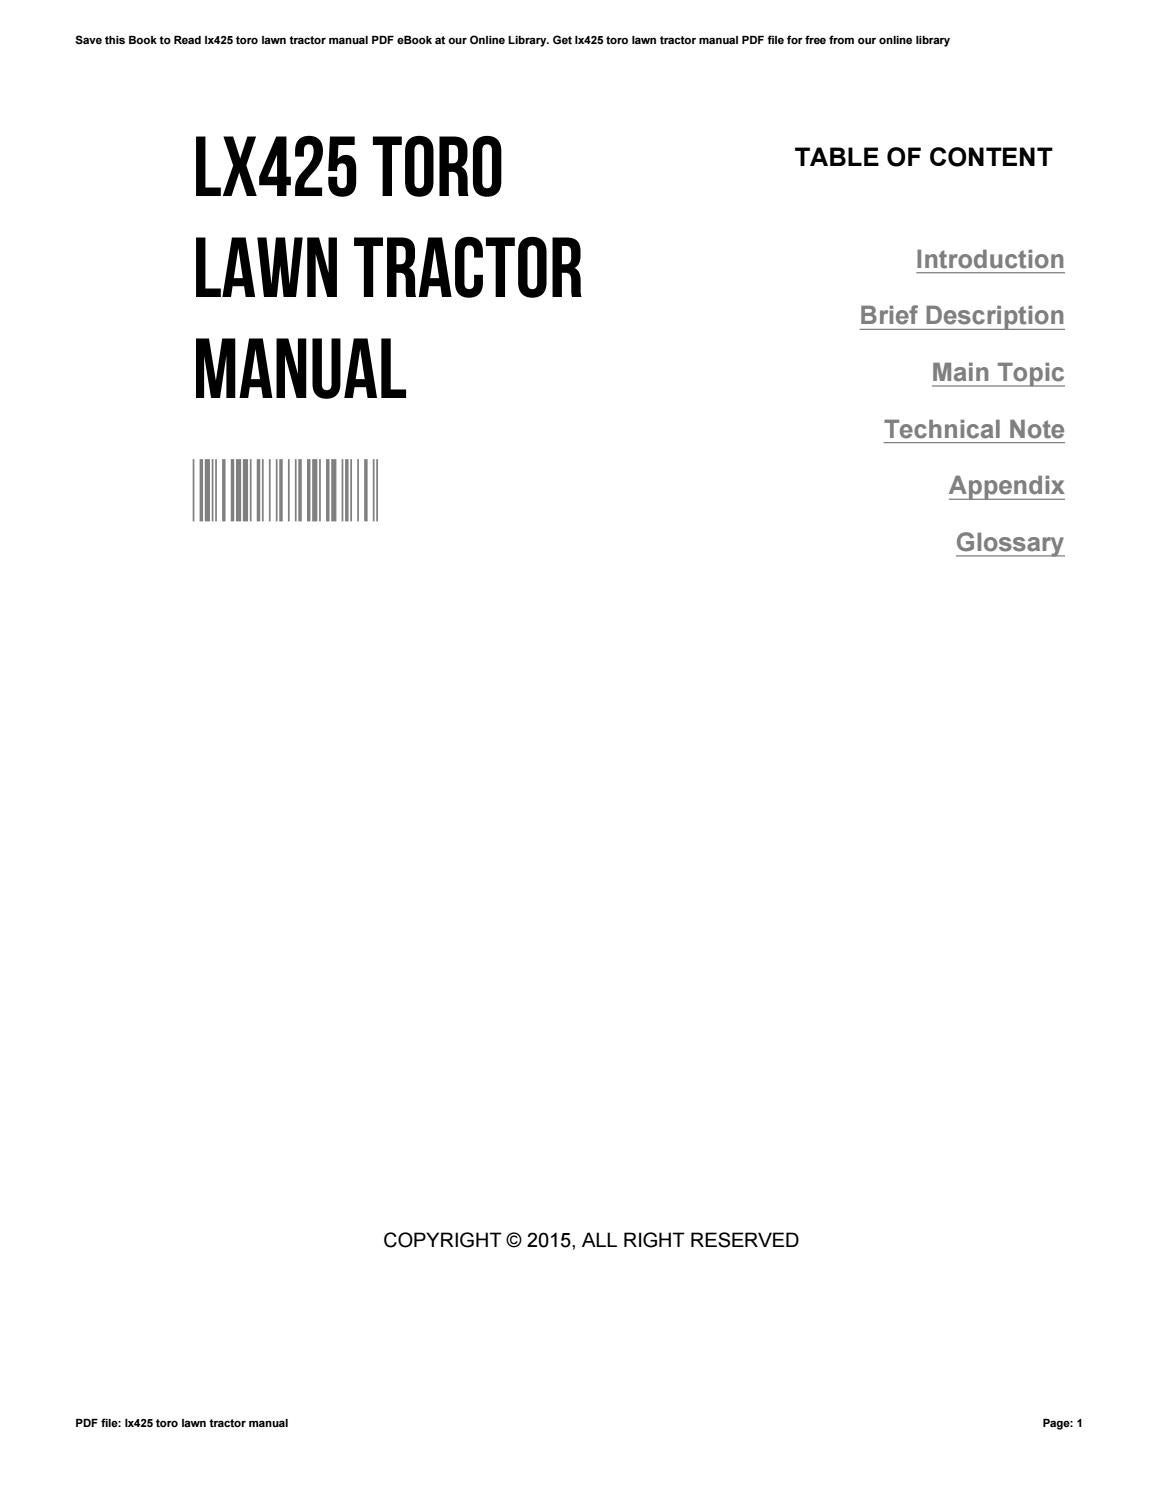 Lx425 toro lawn tractor manual by WilliamHuddleston2917